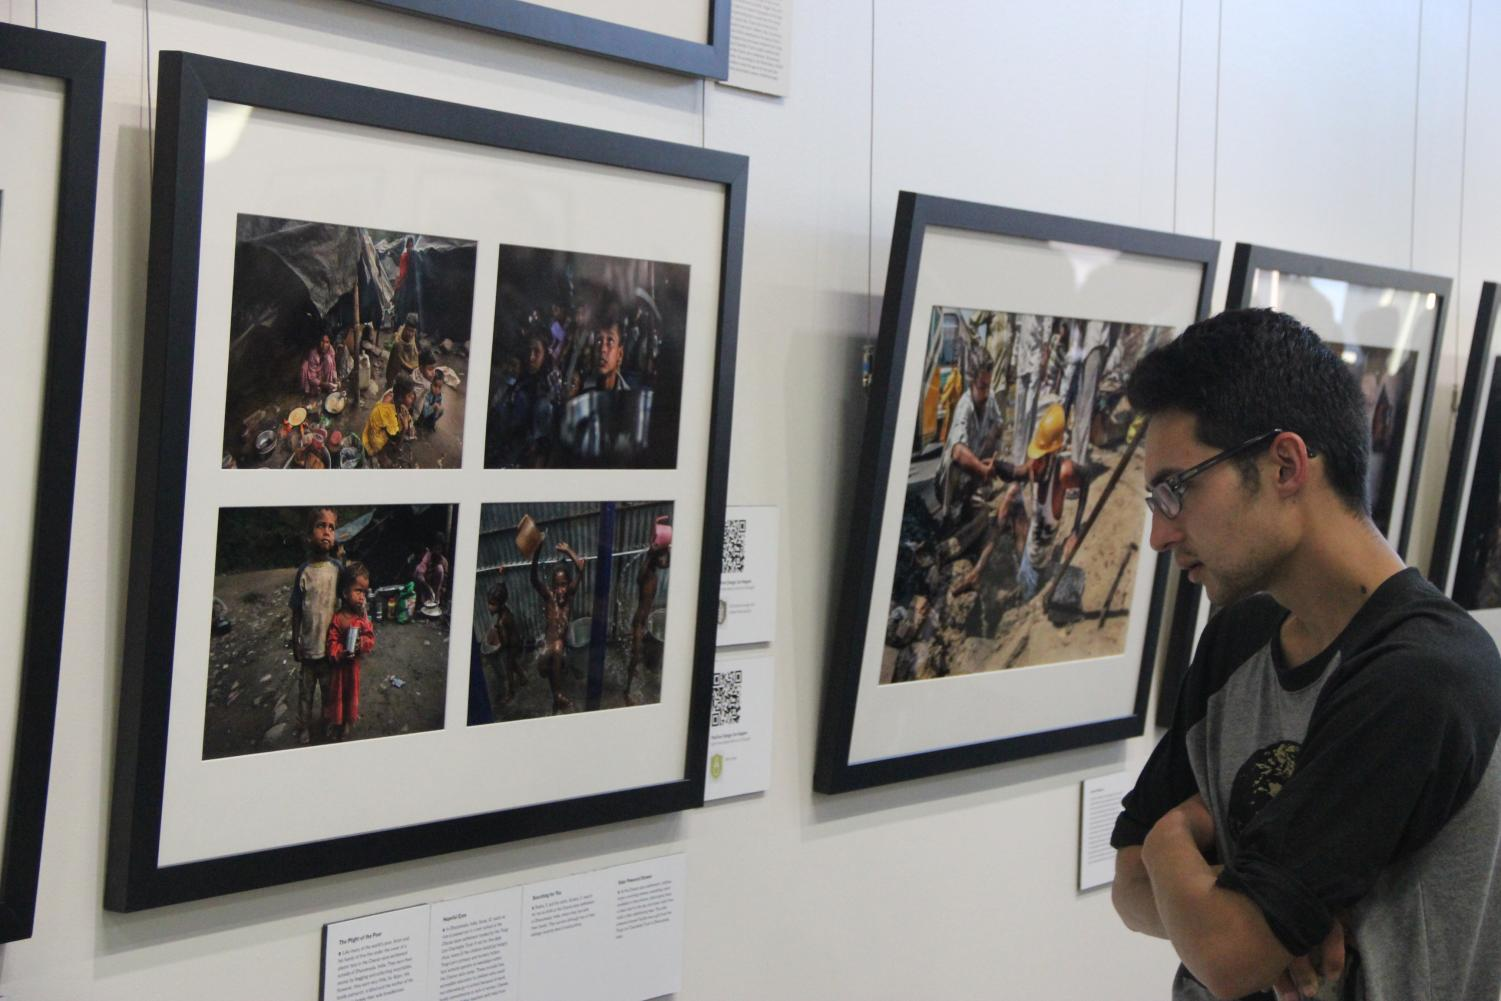 Austin Gonzales browses the photo collection by Renne C. Byer, showcasing poverty around the world.